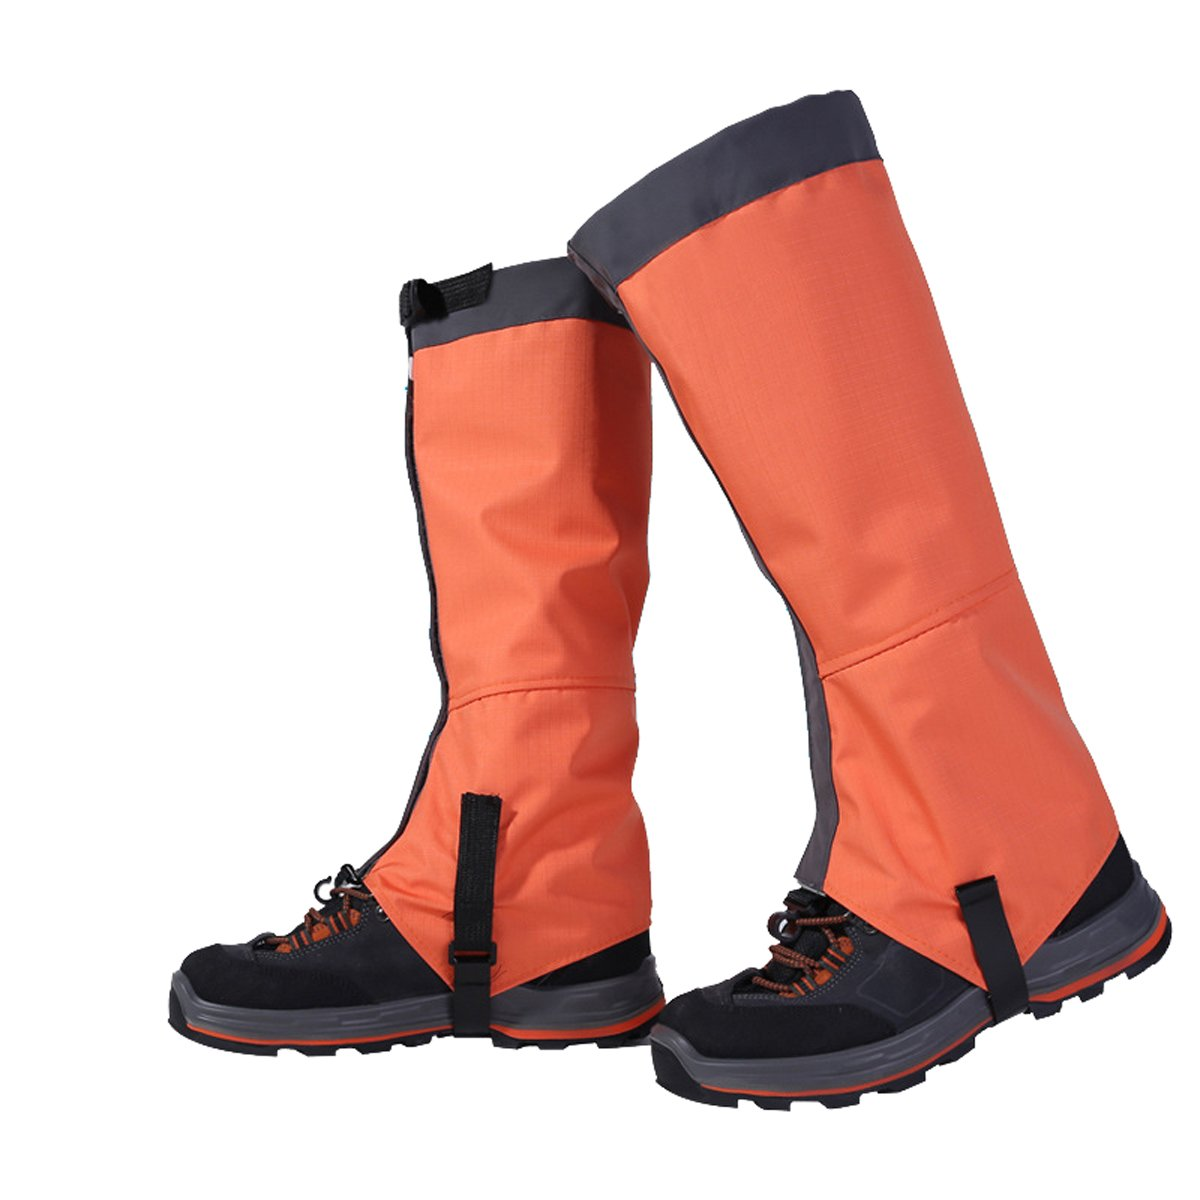 Unisex Outdoor Legging Leg Cover Wraps Walking Gaiters For Climbing Hunting Hiking L) Yimidear